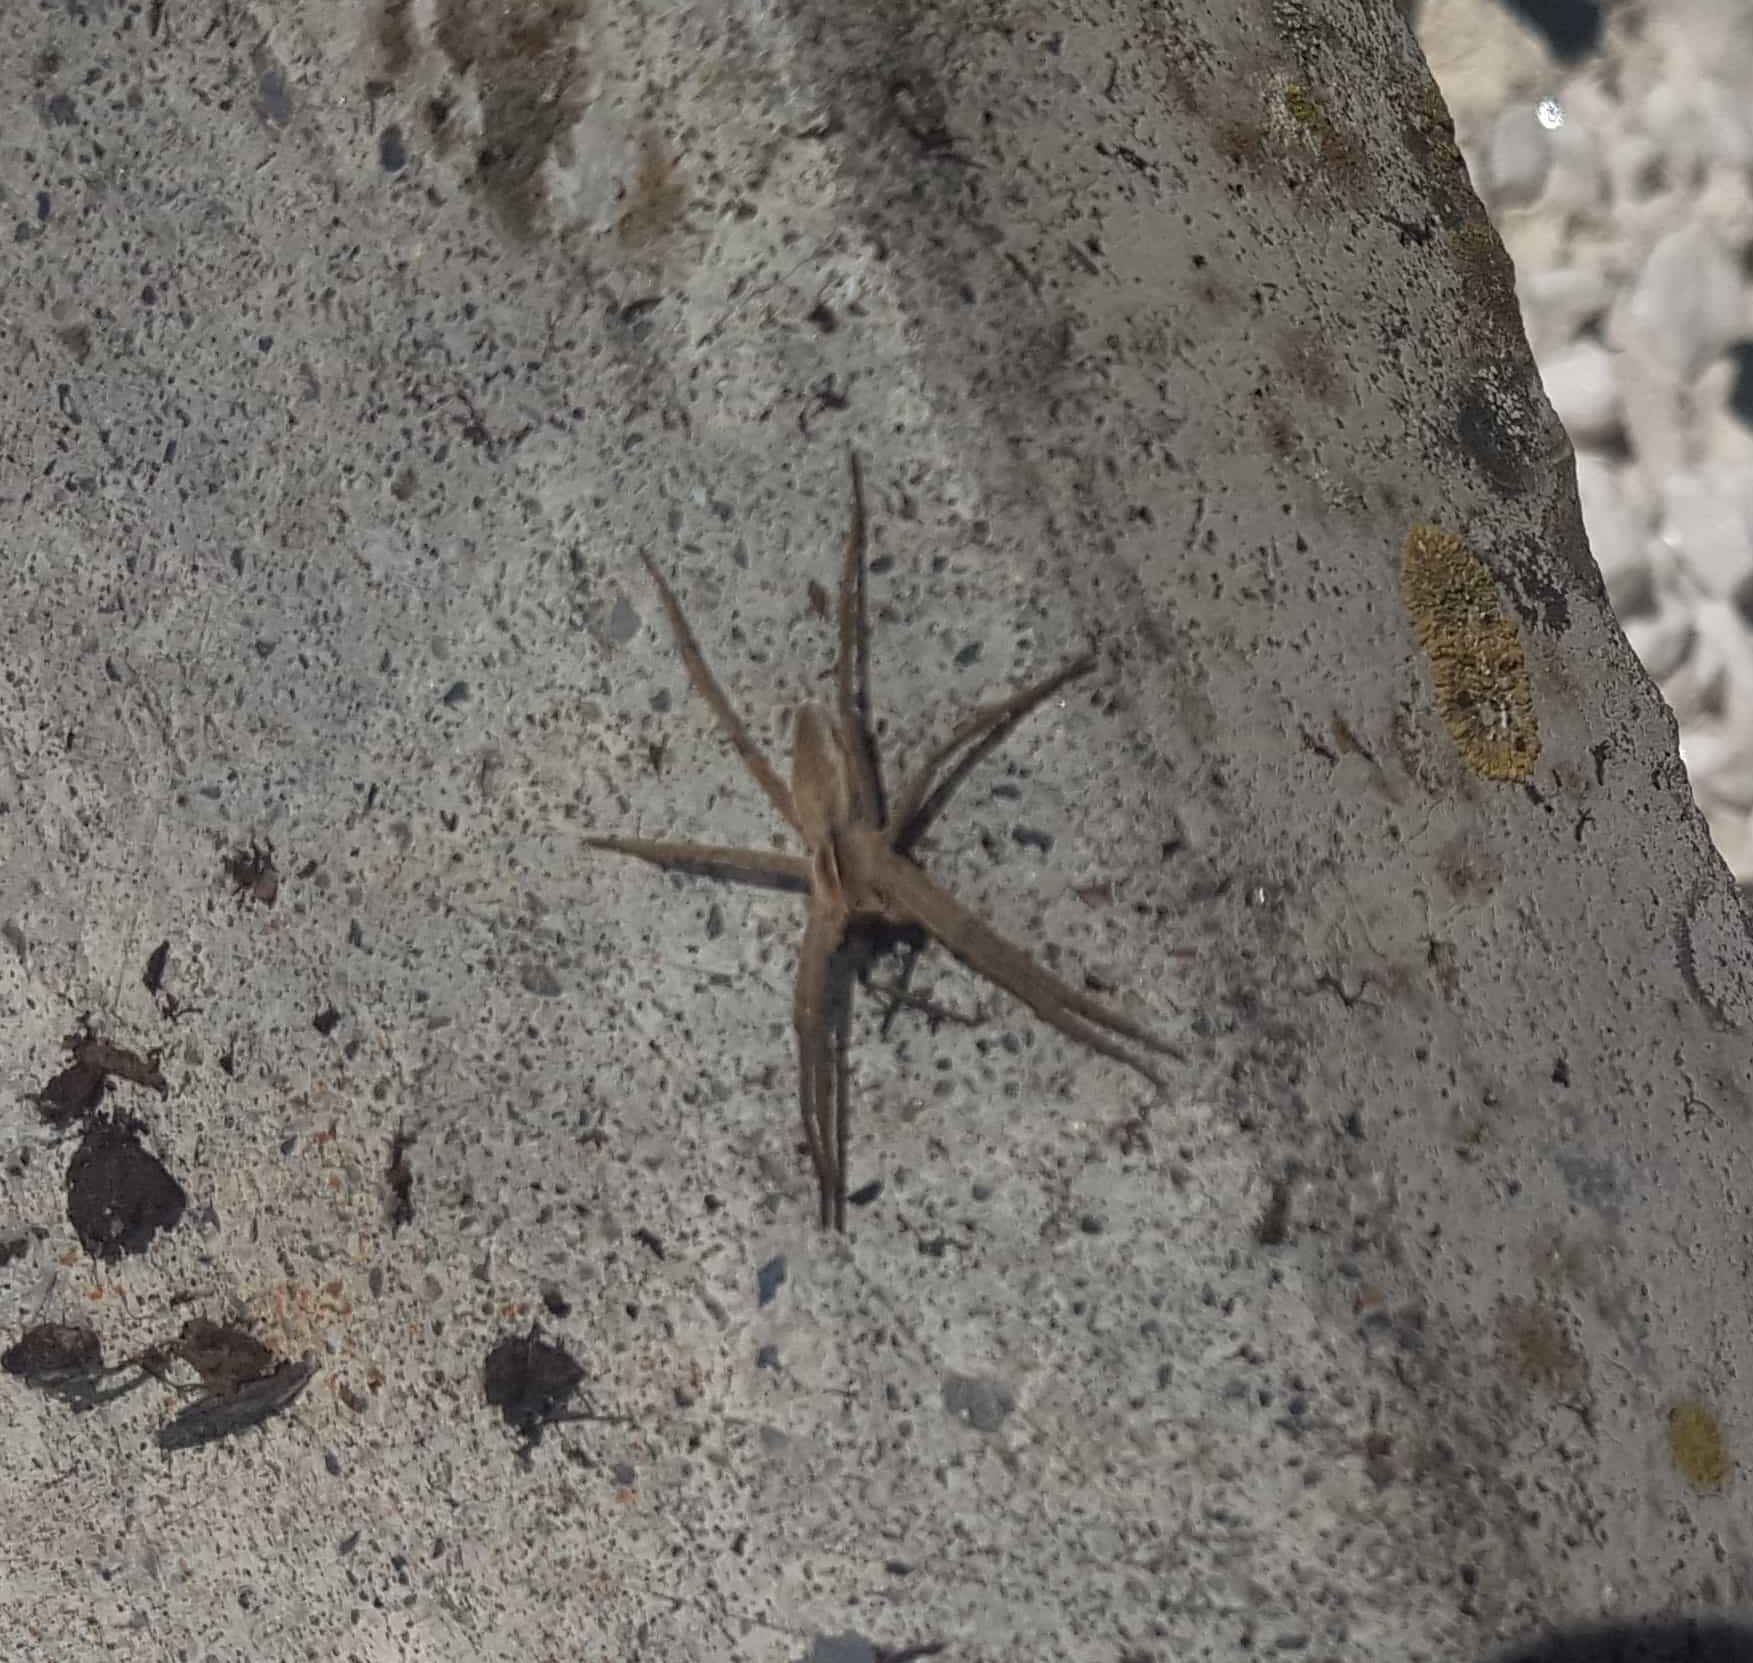 Picture of Pisaura mirabilis (European Nursery Web Spider) - Dorsal